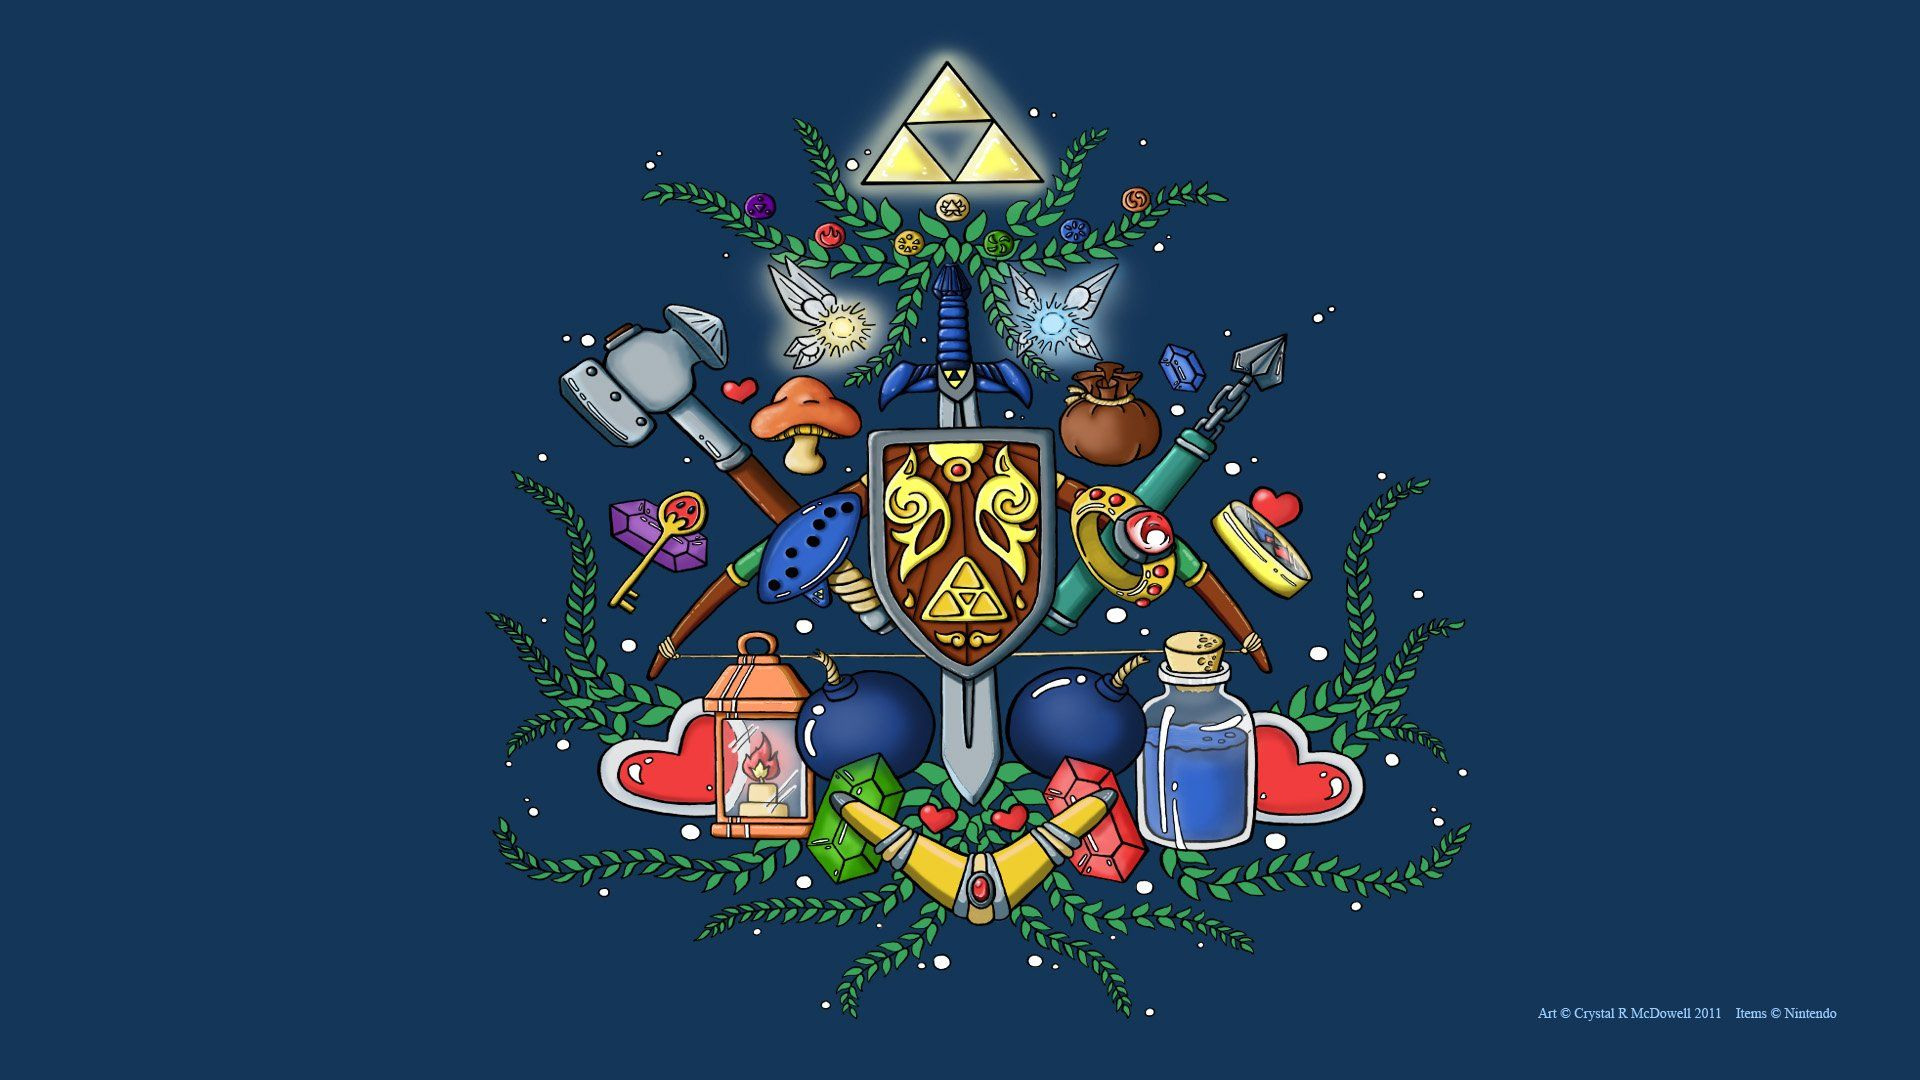 Download The Legend Of Zelda Wallpapers For Android The Legend Of